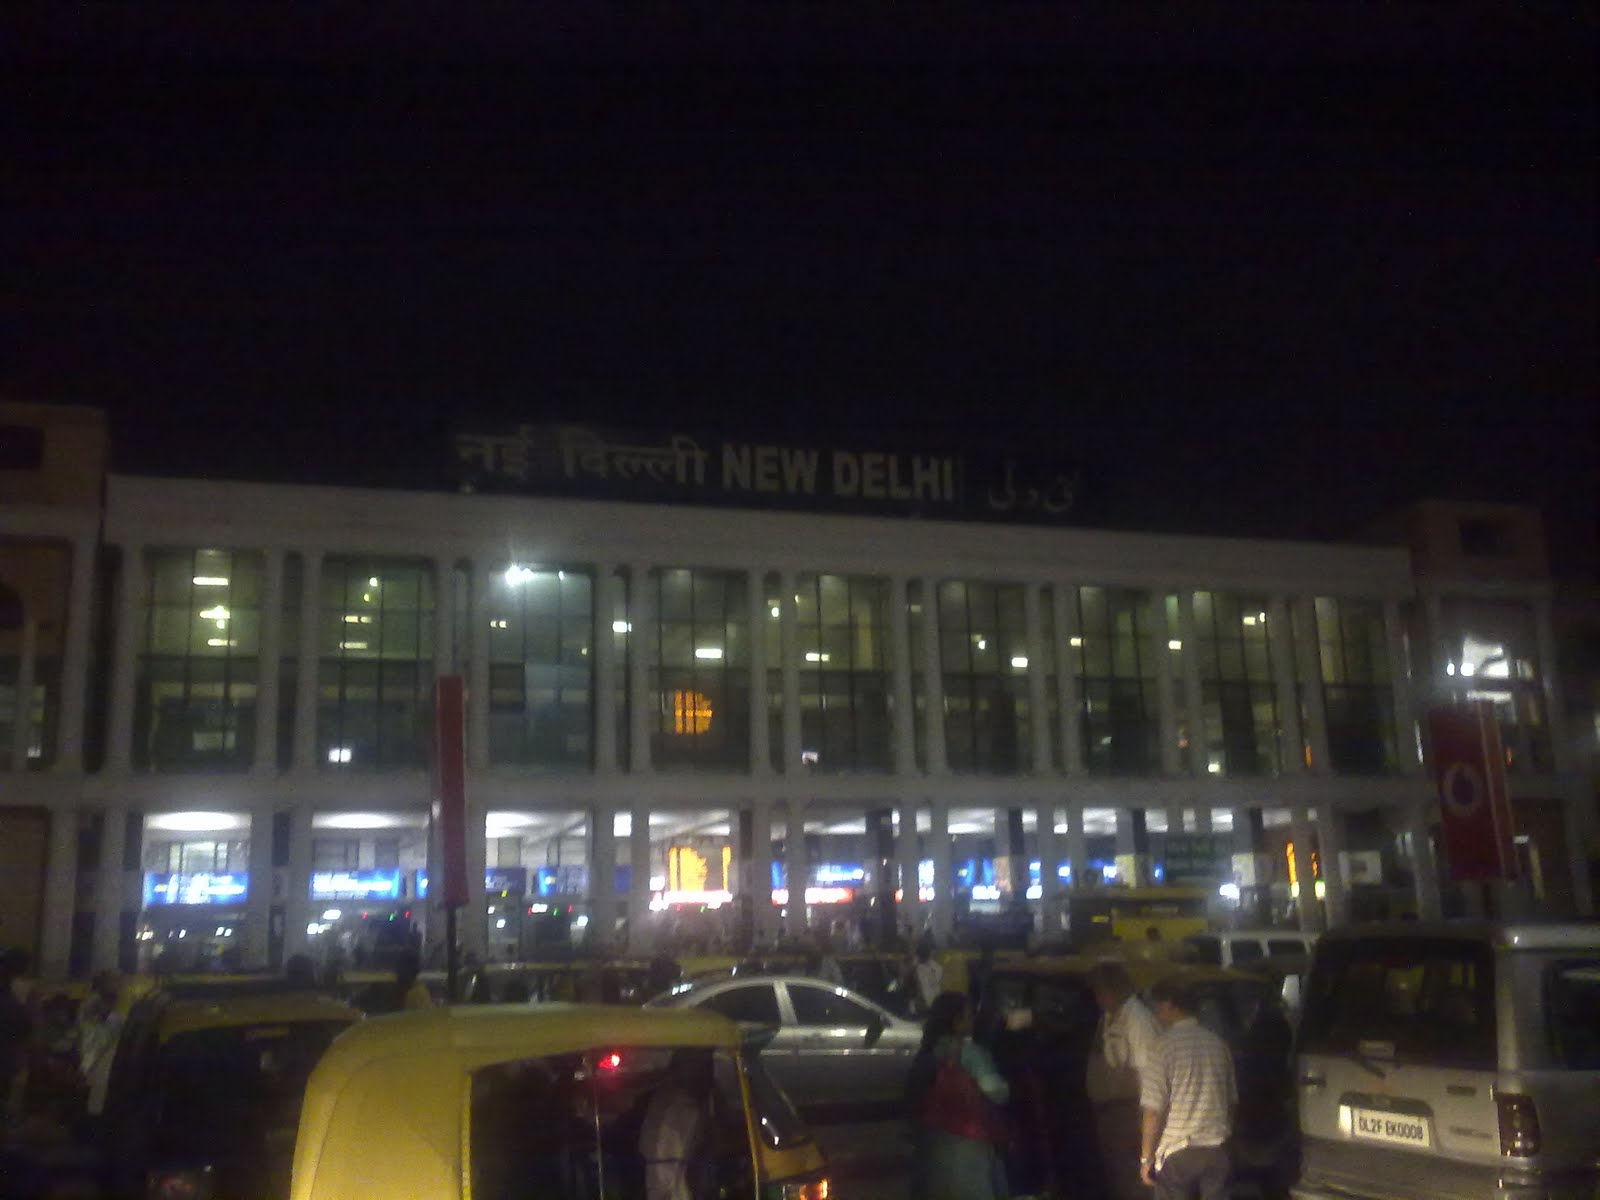 Car Parking At Cst Railway Station